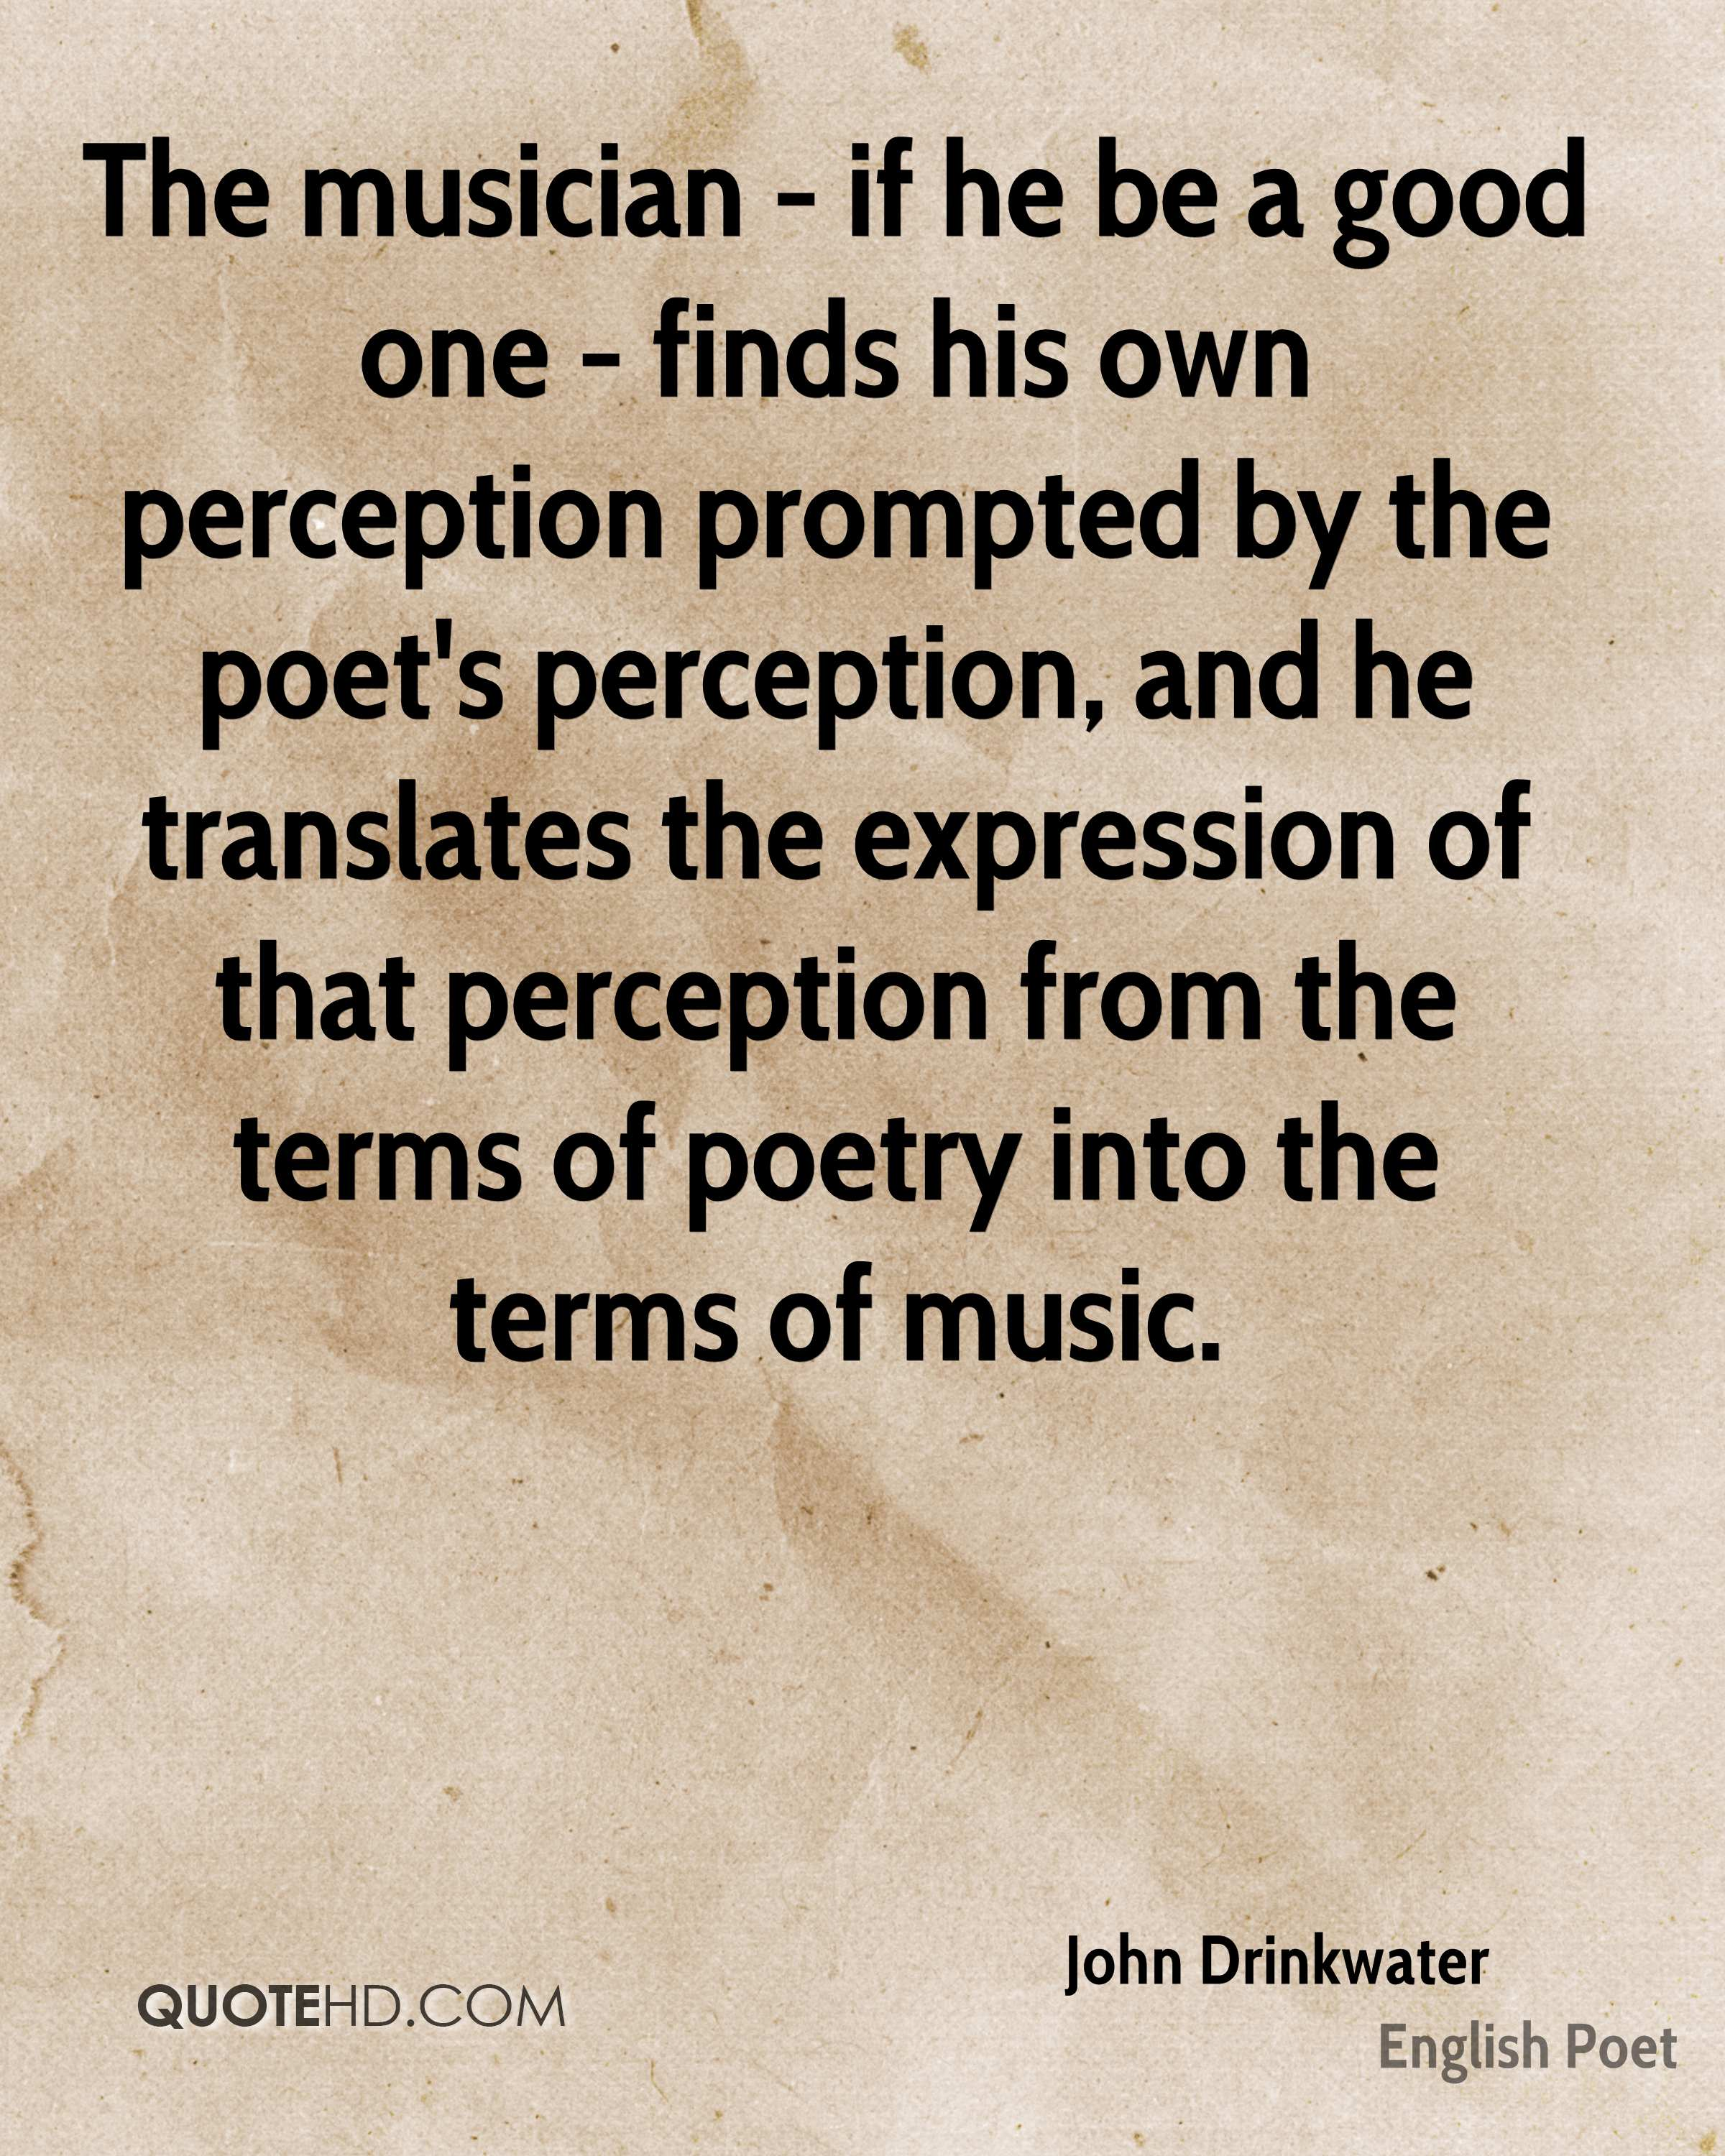 The musician - if he be a good one - finds his own perception prompted by the poet's perception, and he translates the expression of that perception from the terms of poetry into the terms of music.